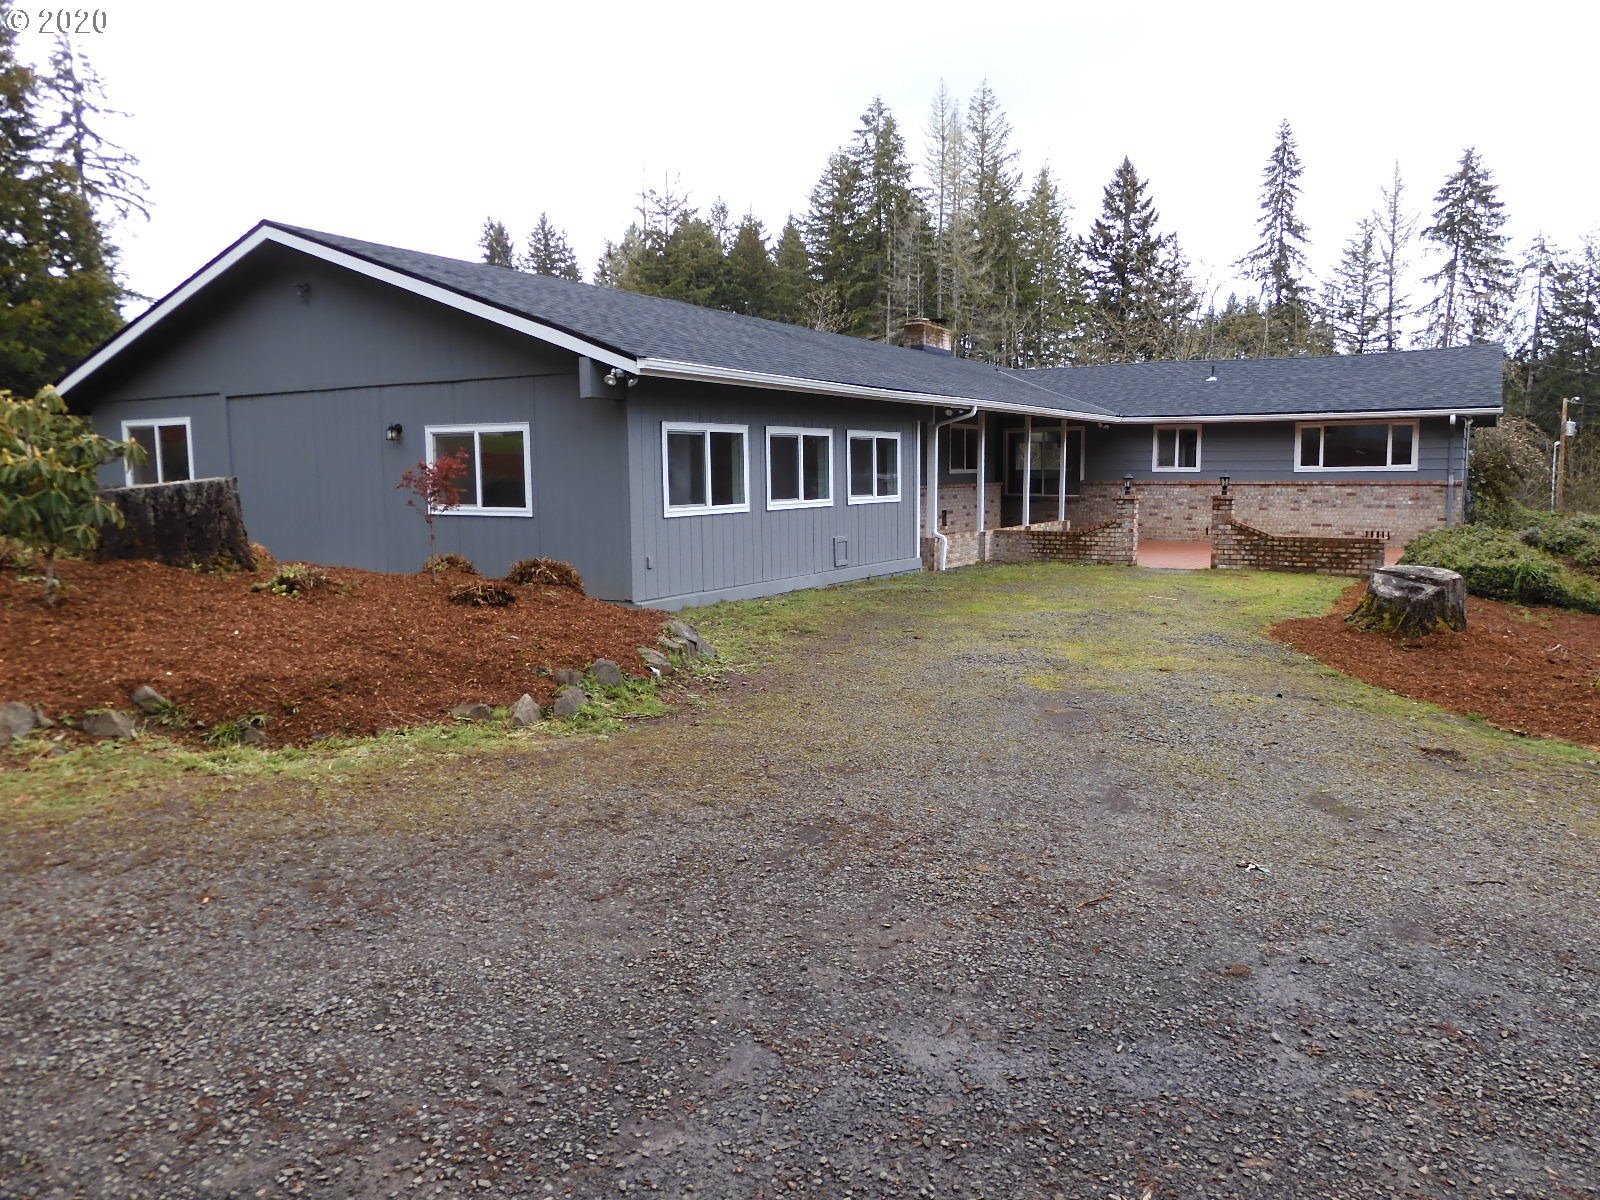 24367 BOLTON HILL RD, Veneta OR 97487